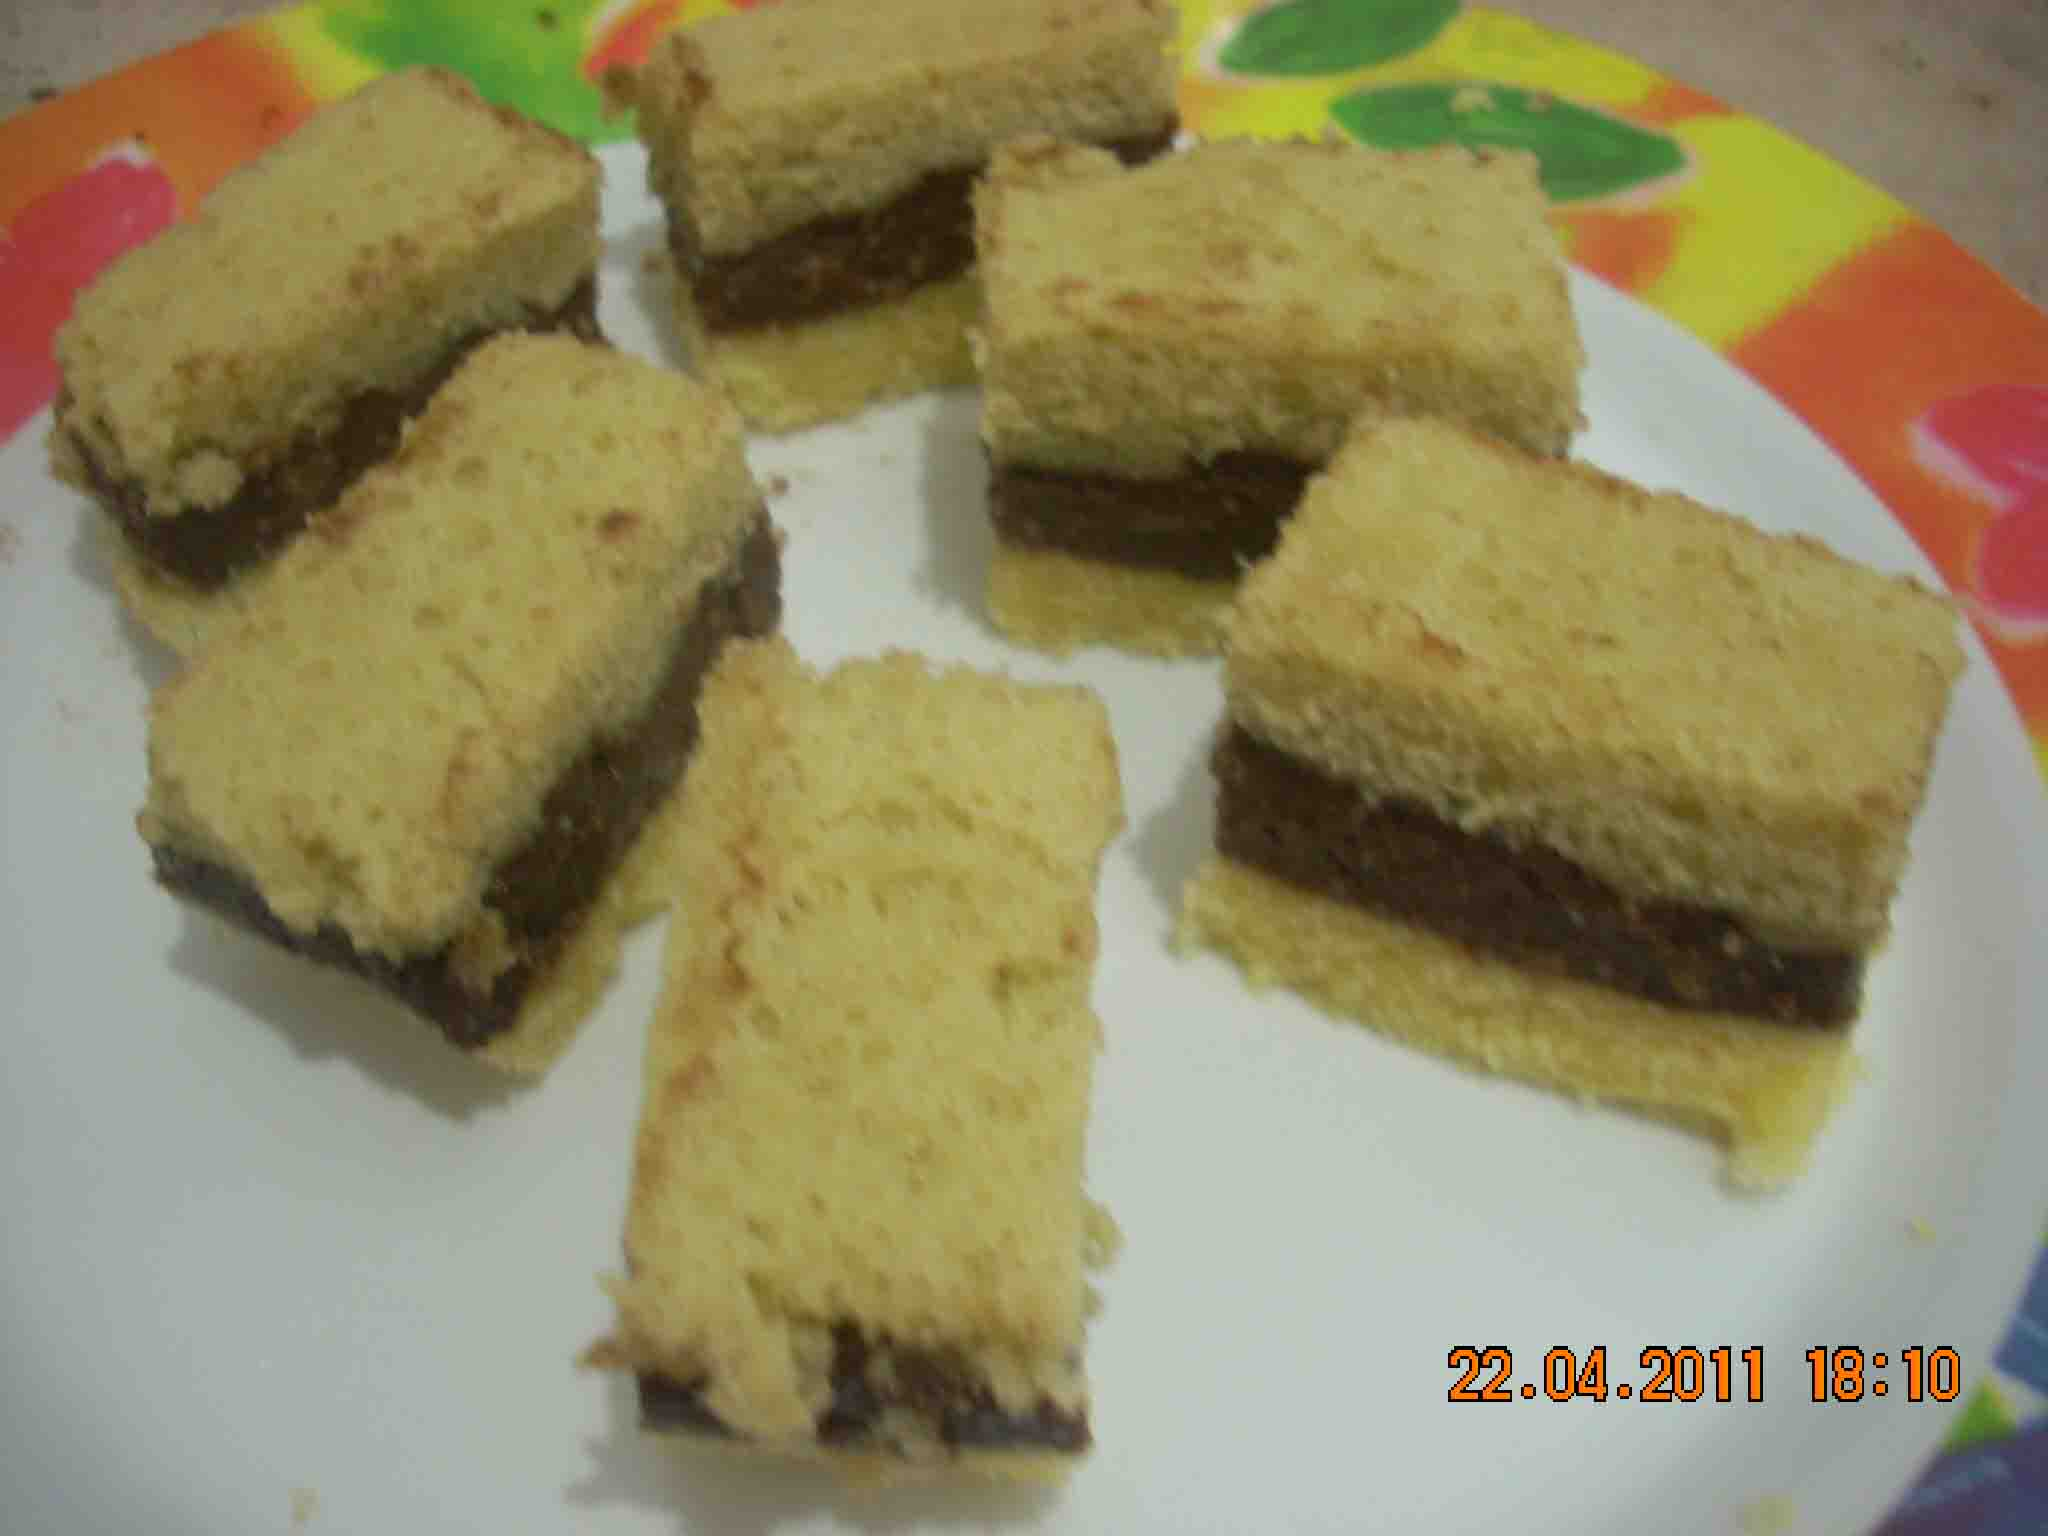 resep brownies kukus youtube resep brownies kukus ala amanda yang